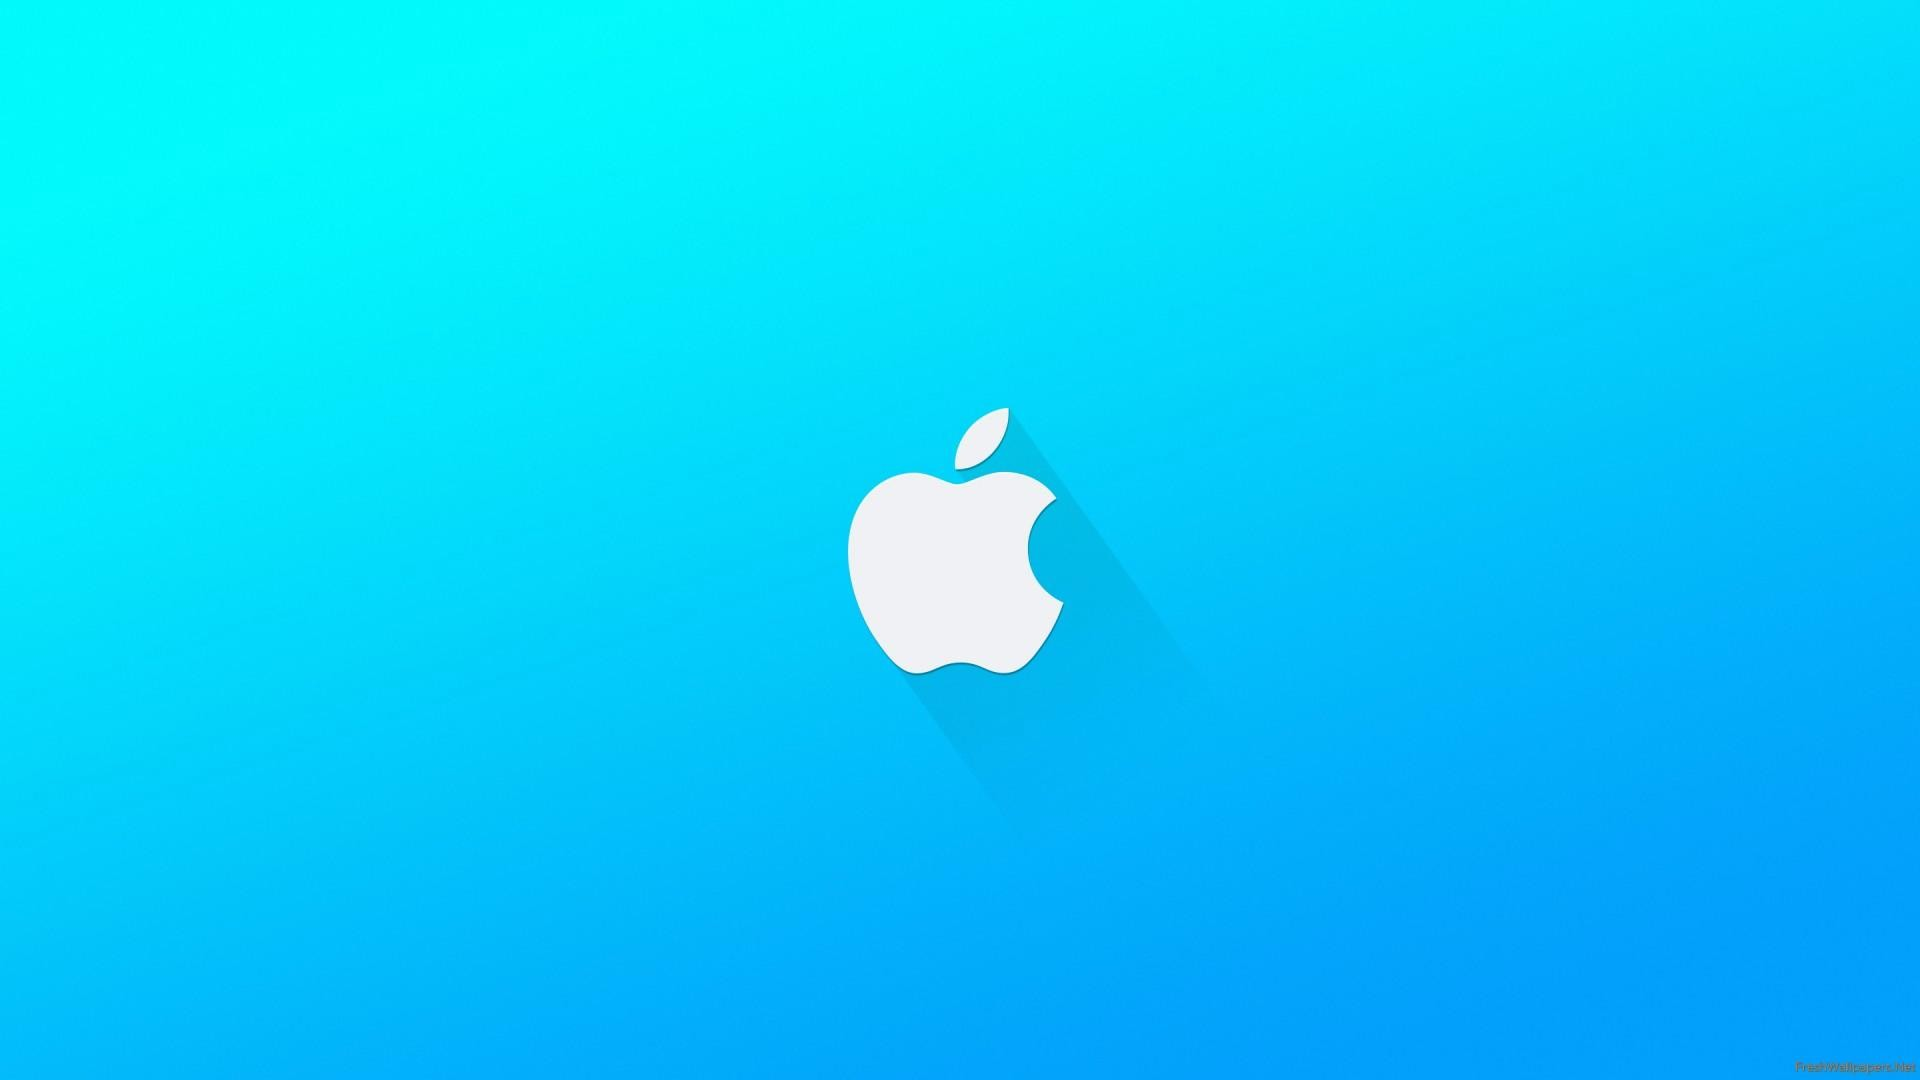 Apple Logo HD Wallpaper (78+ images)